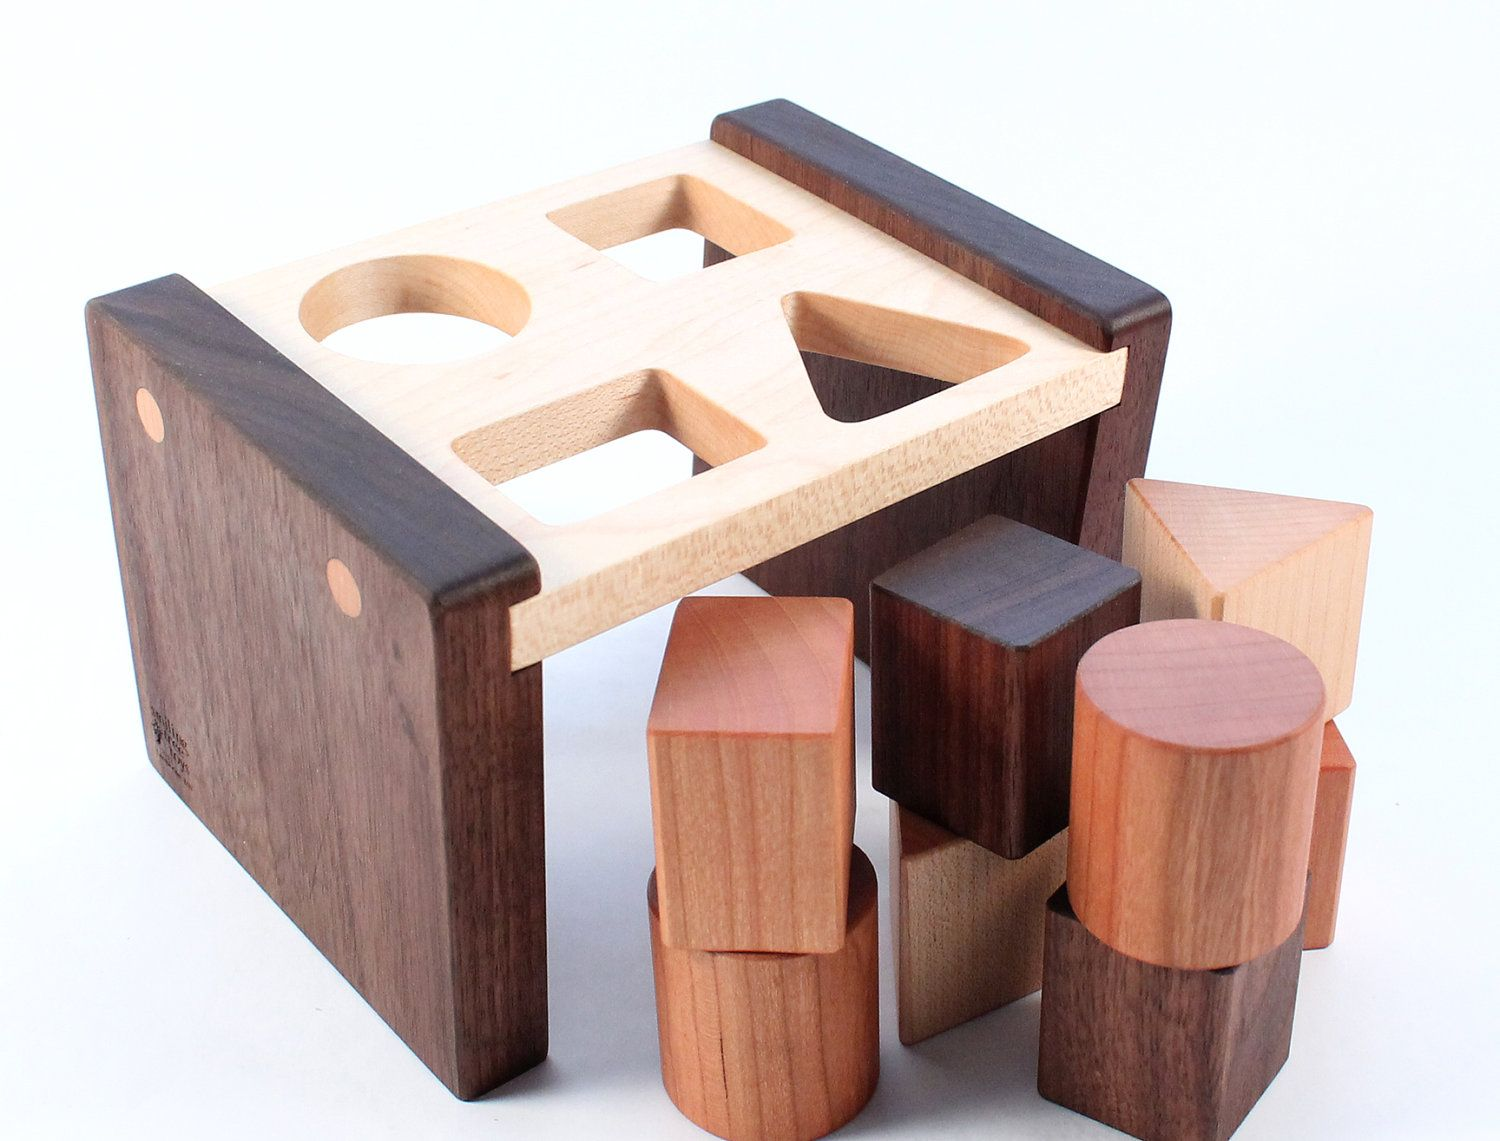 Wooden Toys For Pre School : Wooden shape sorter toy a natural and organic